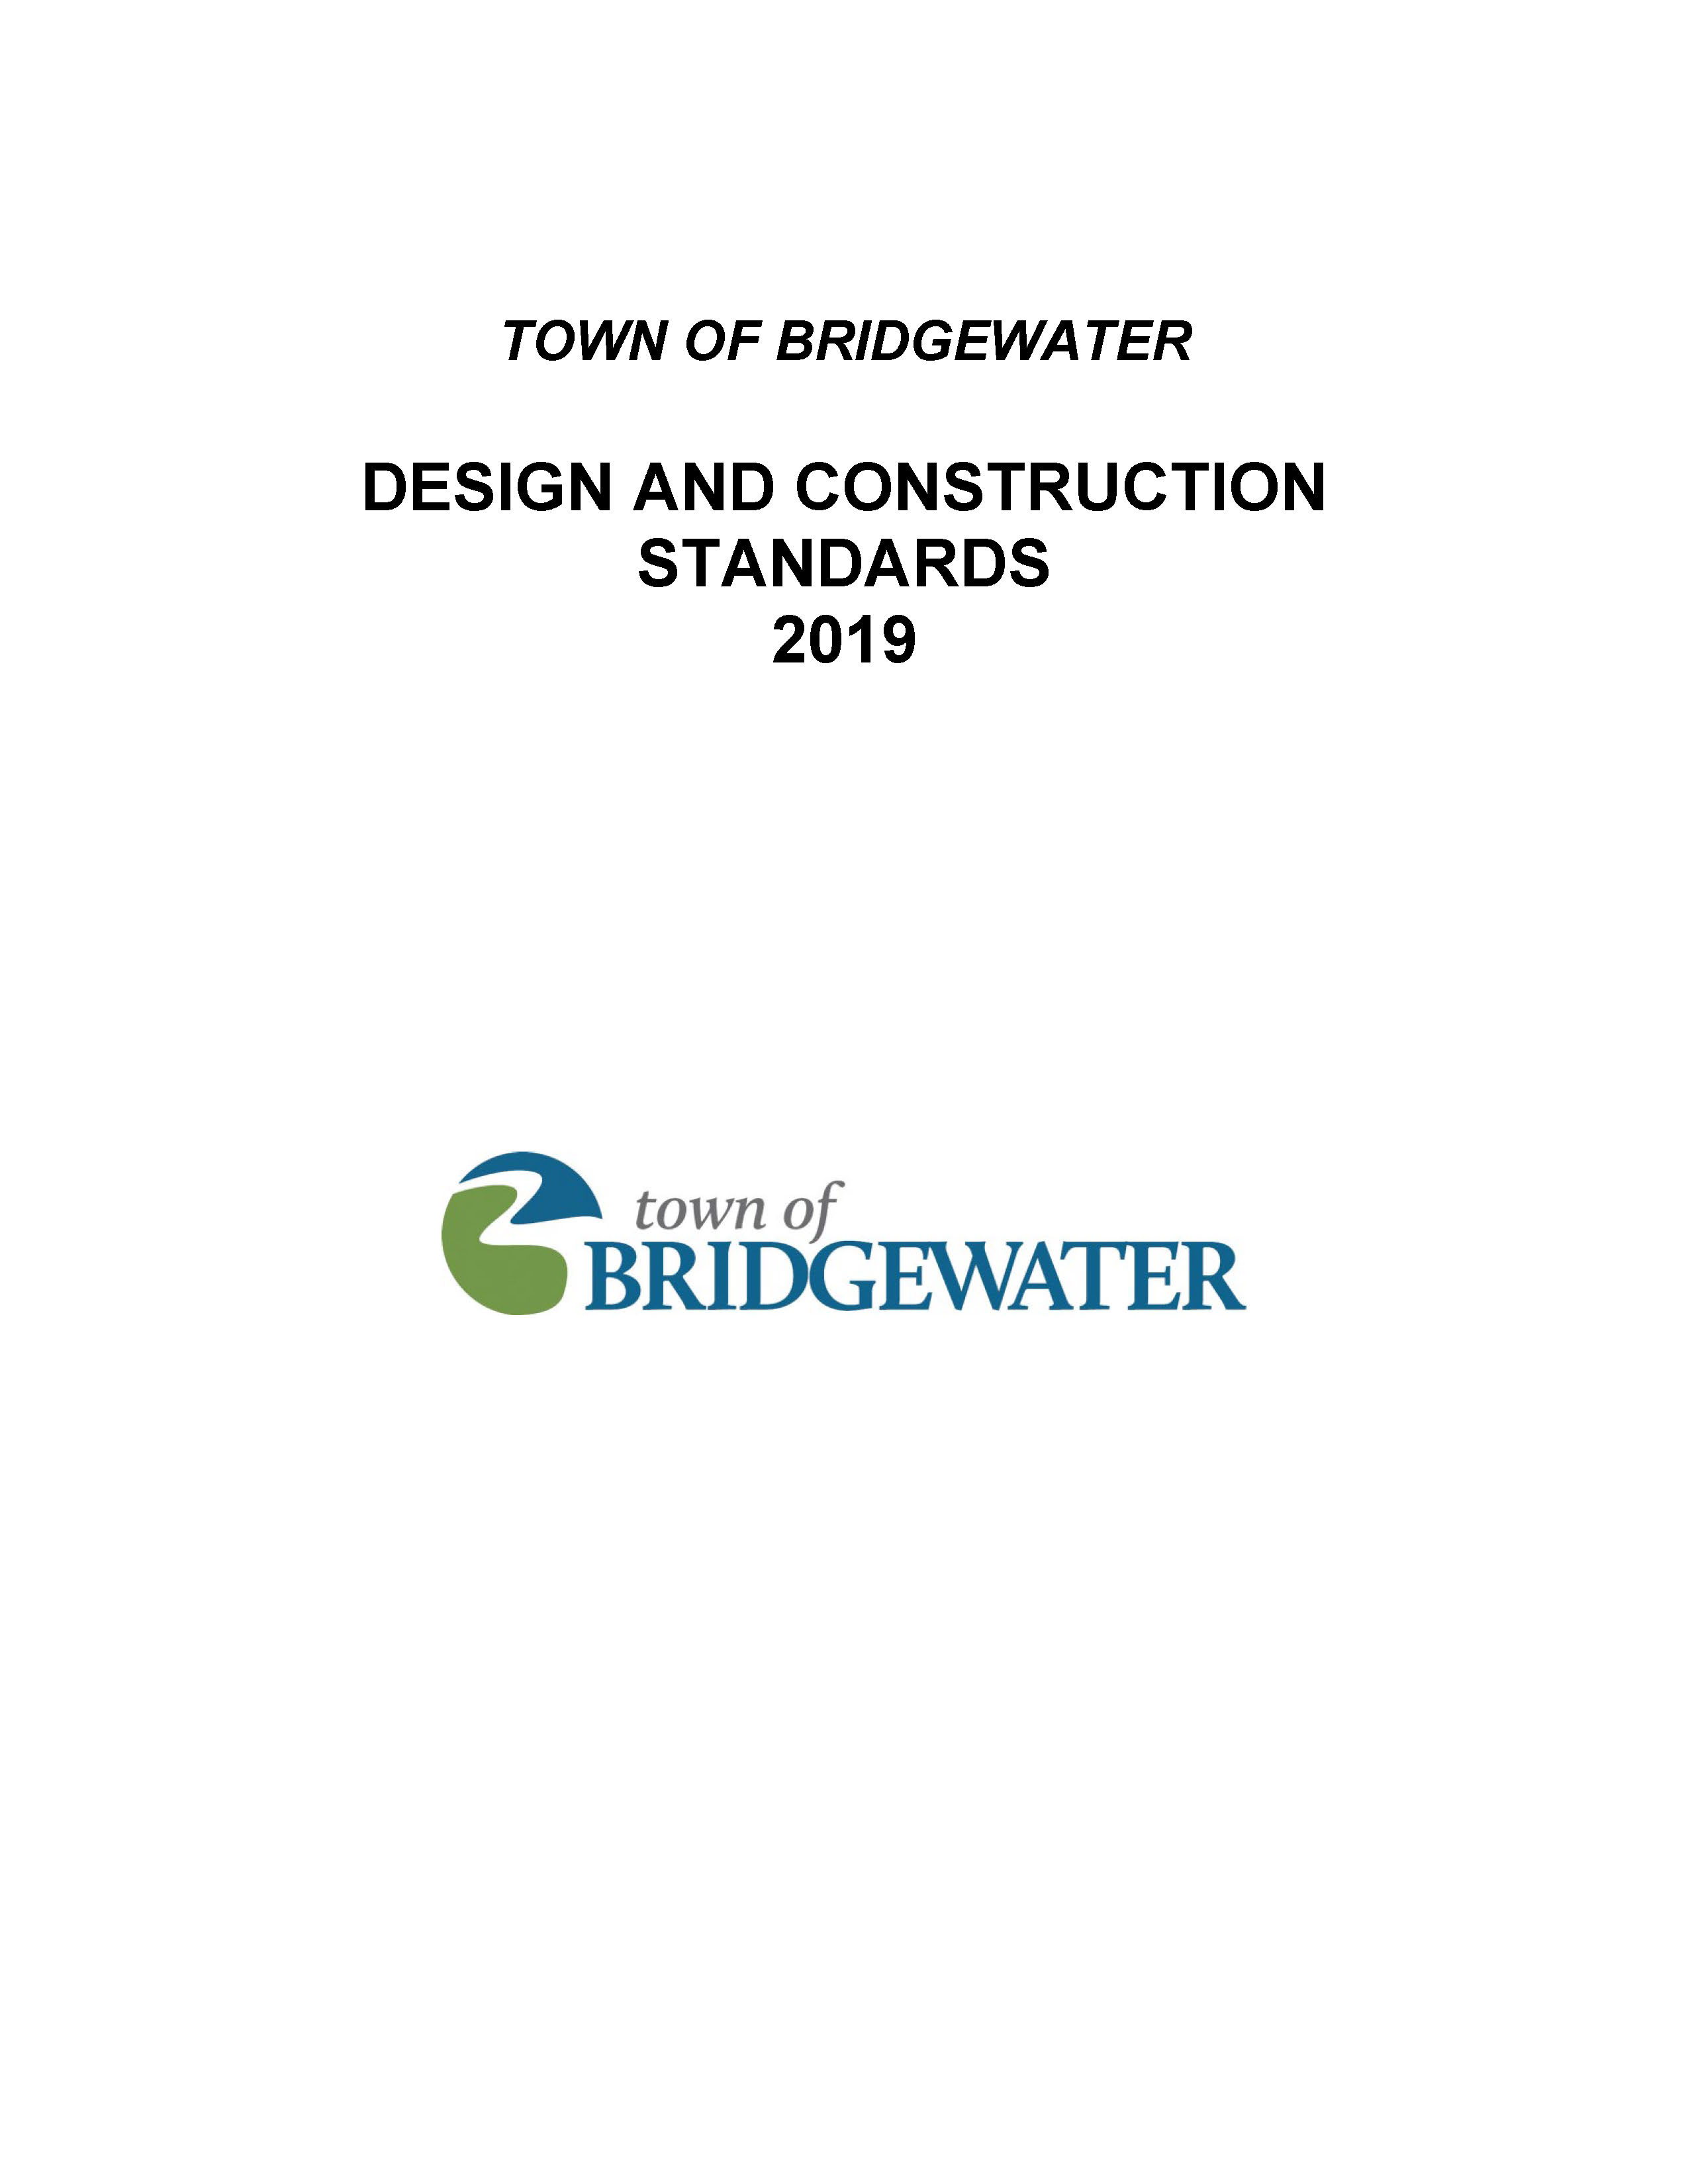 20141224 Council Approved Construction Standards Page 001